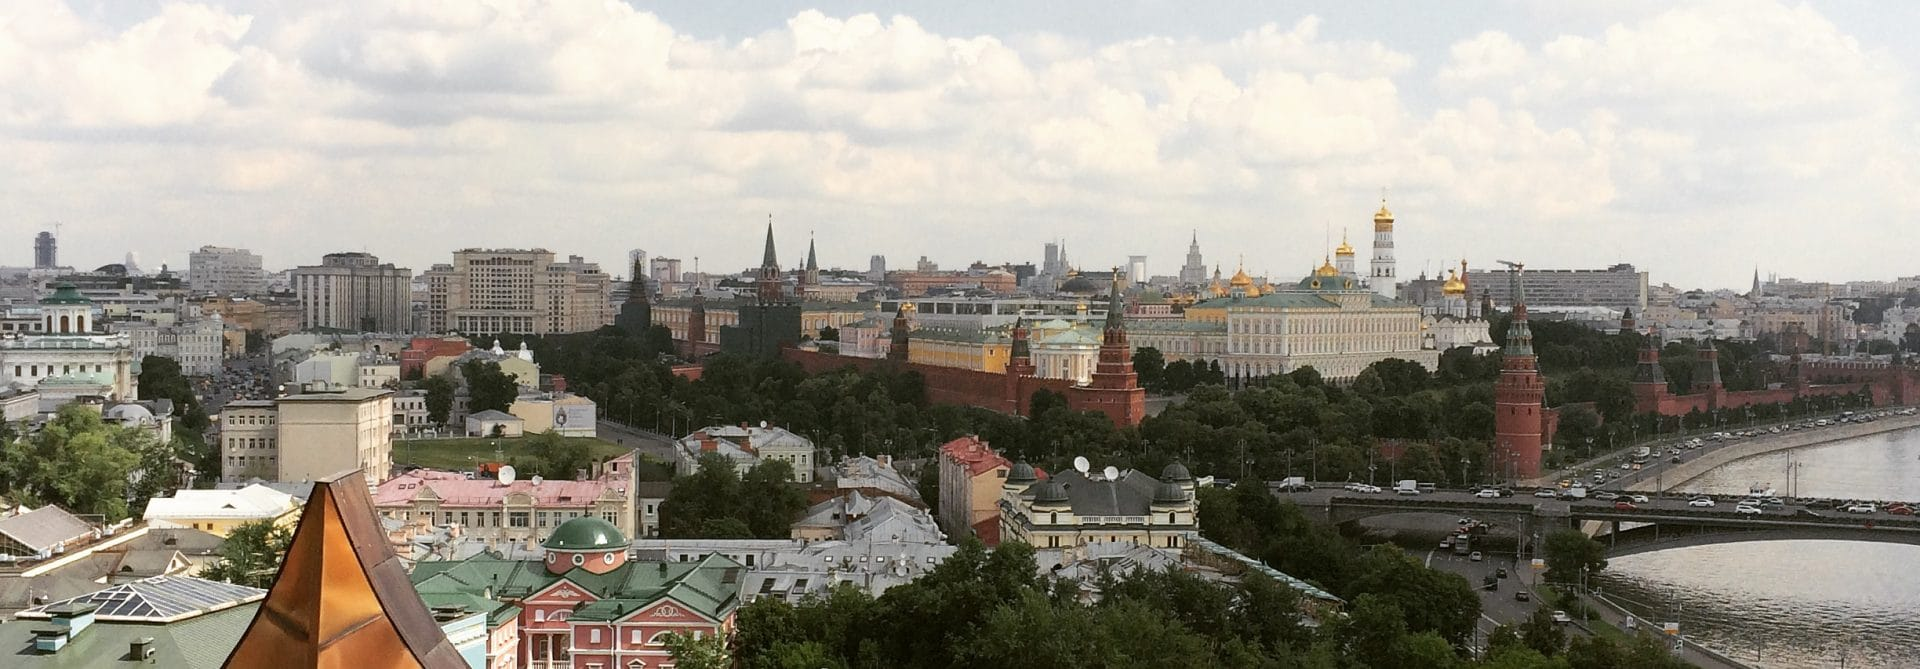 View of the Kremlin from Christ the Savior Cathedral - Moscow, Russia